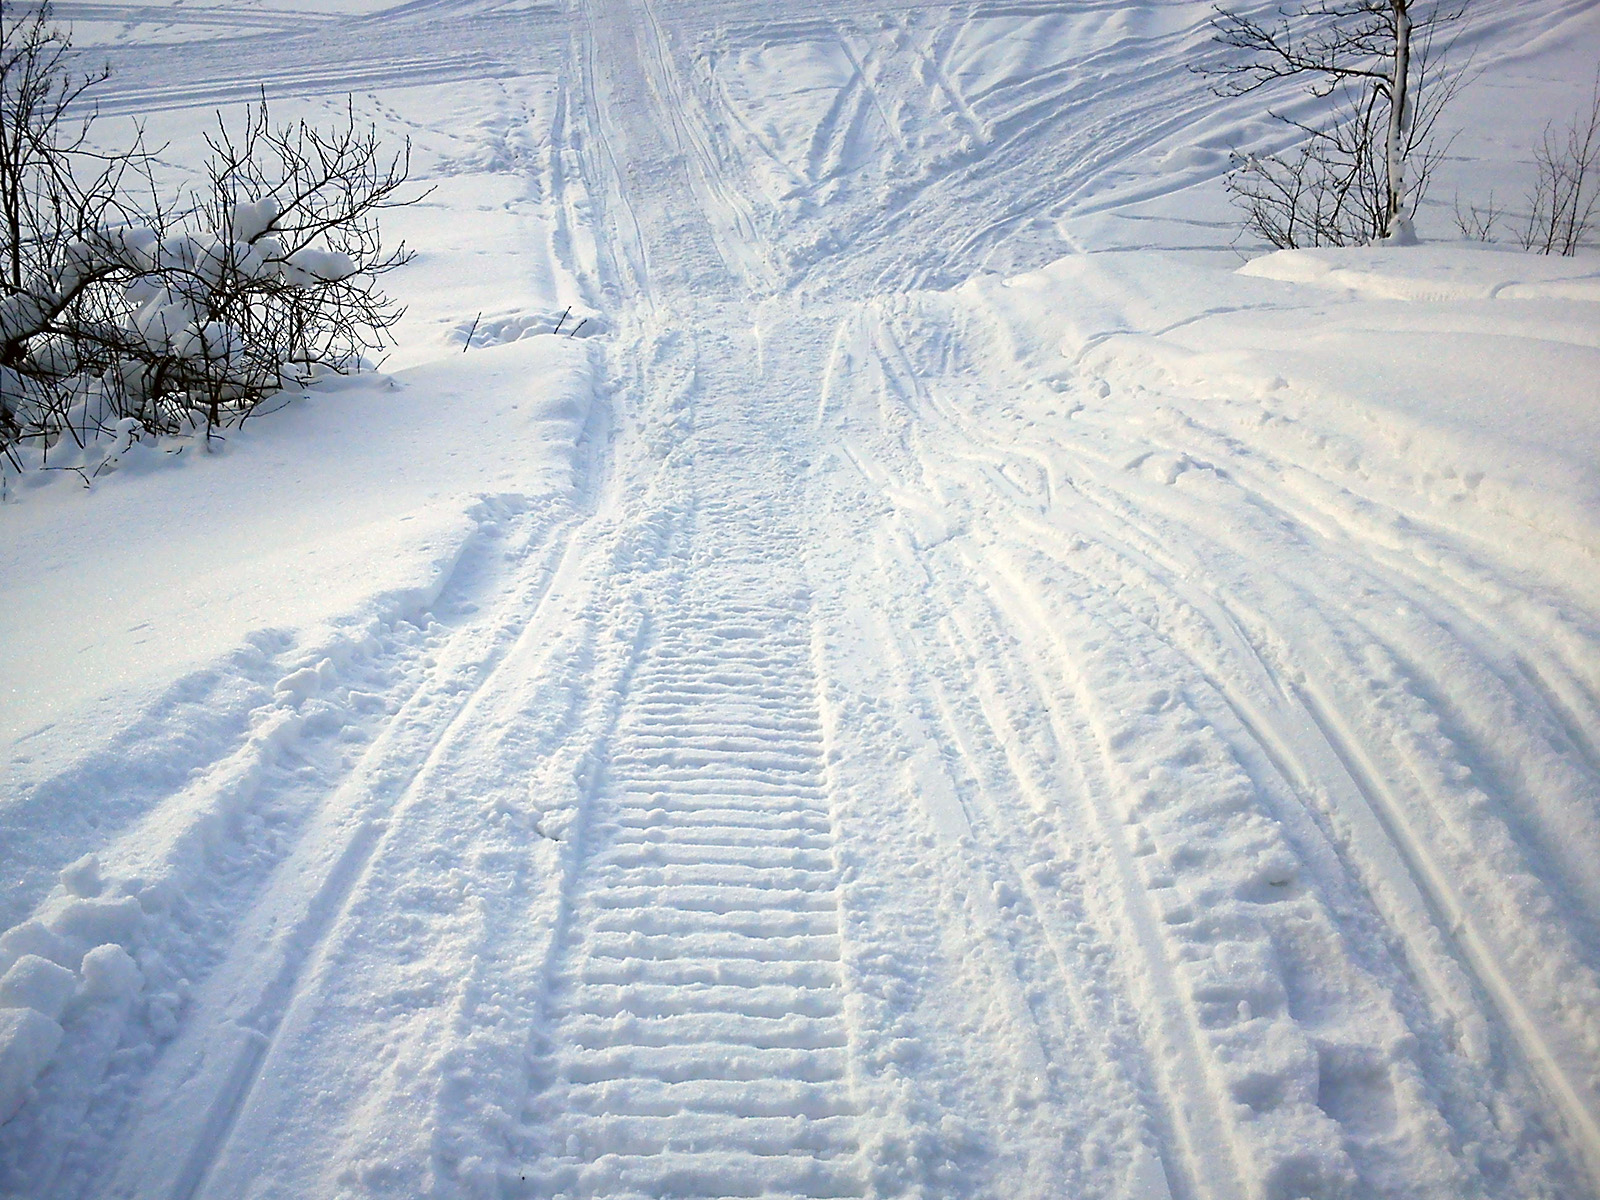 File:Snowmobile tracks jpg - Wikimedia Commons